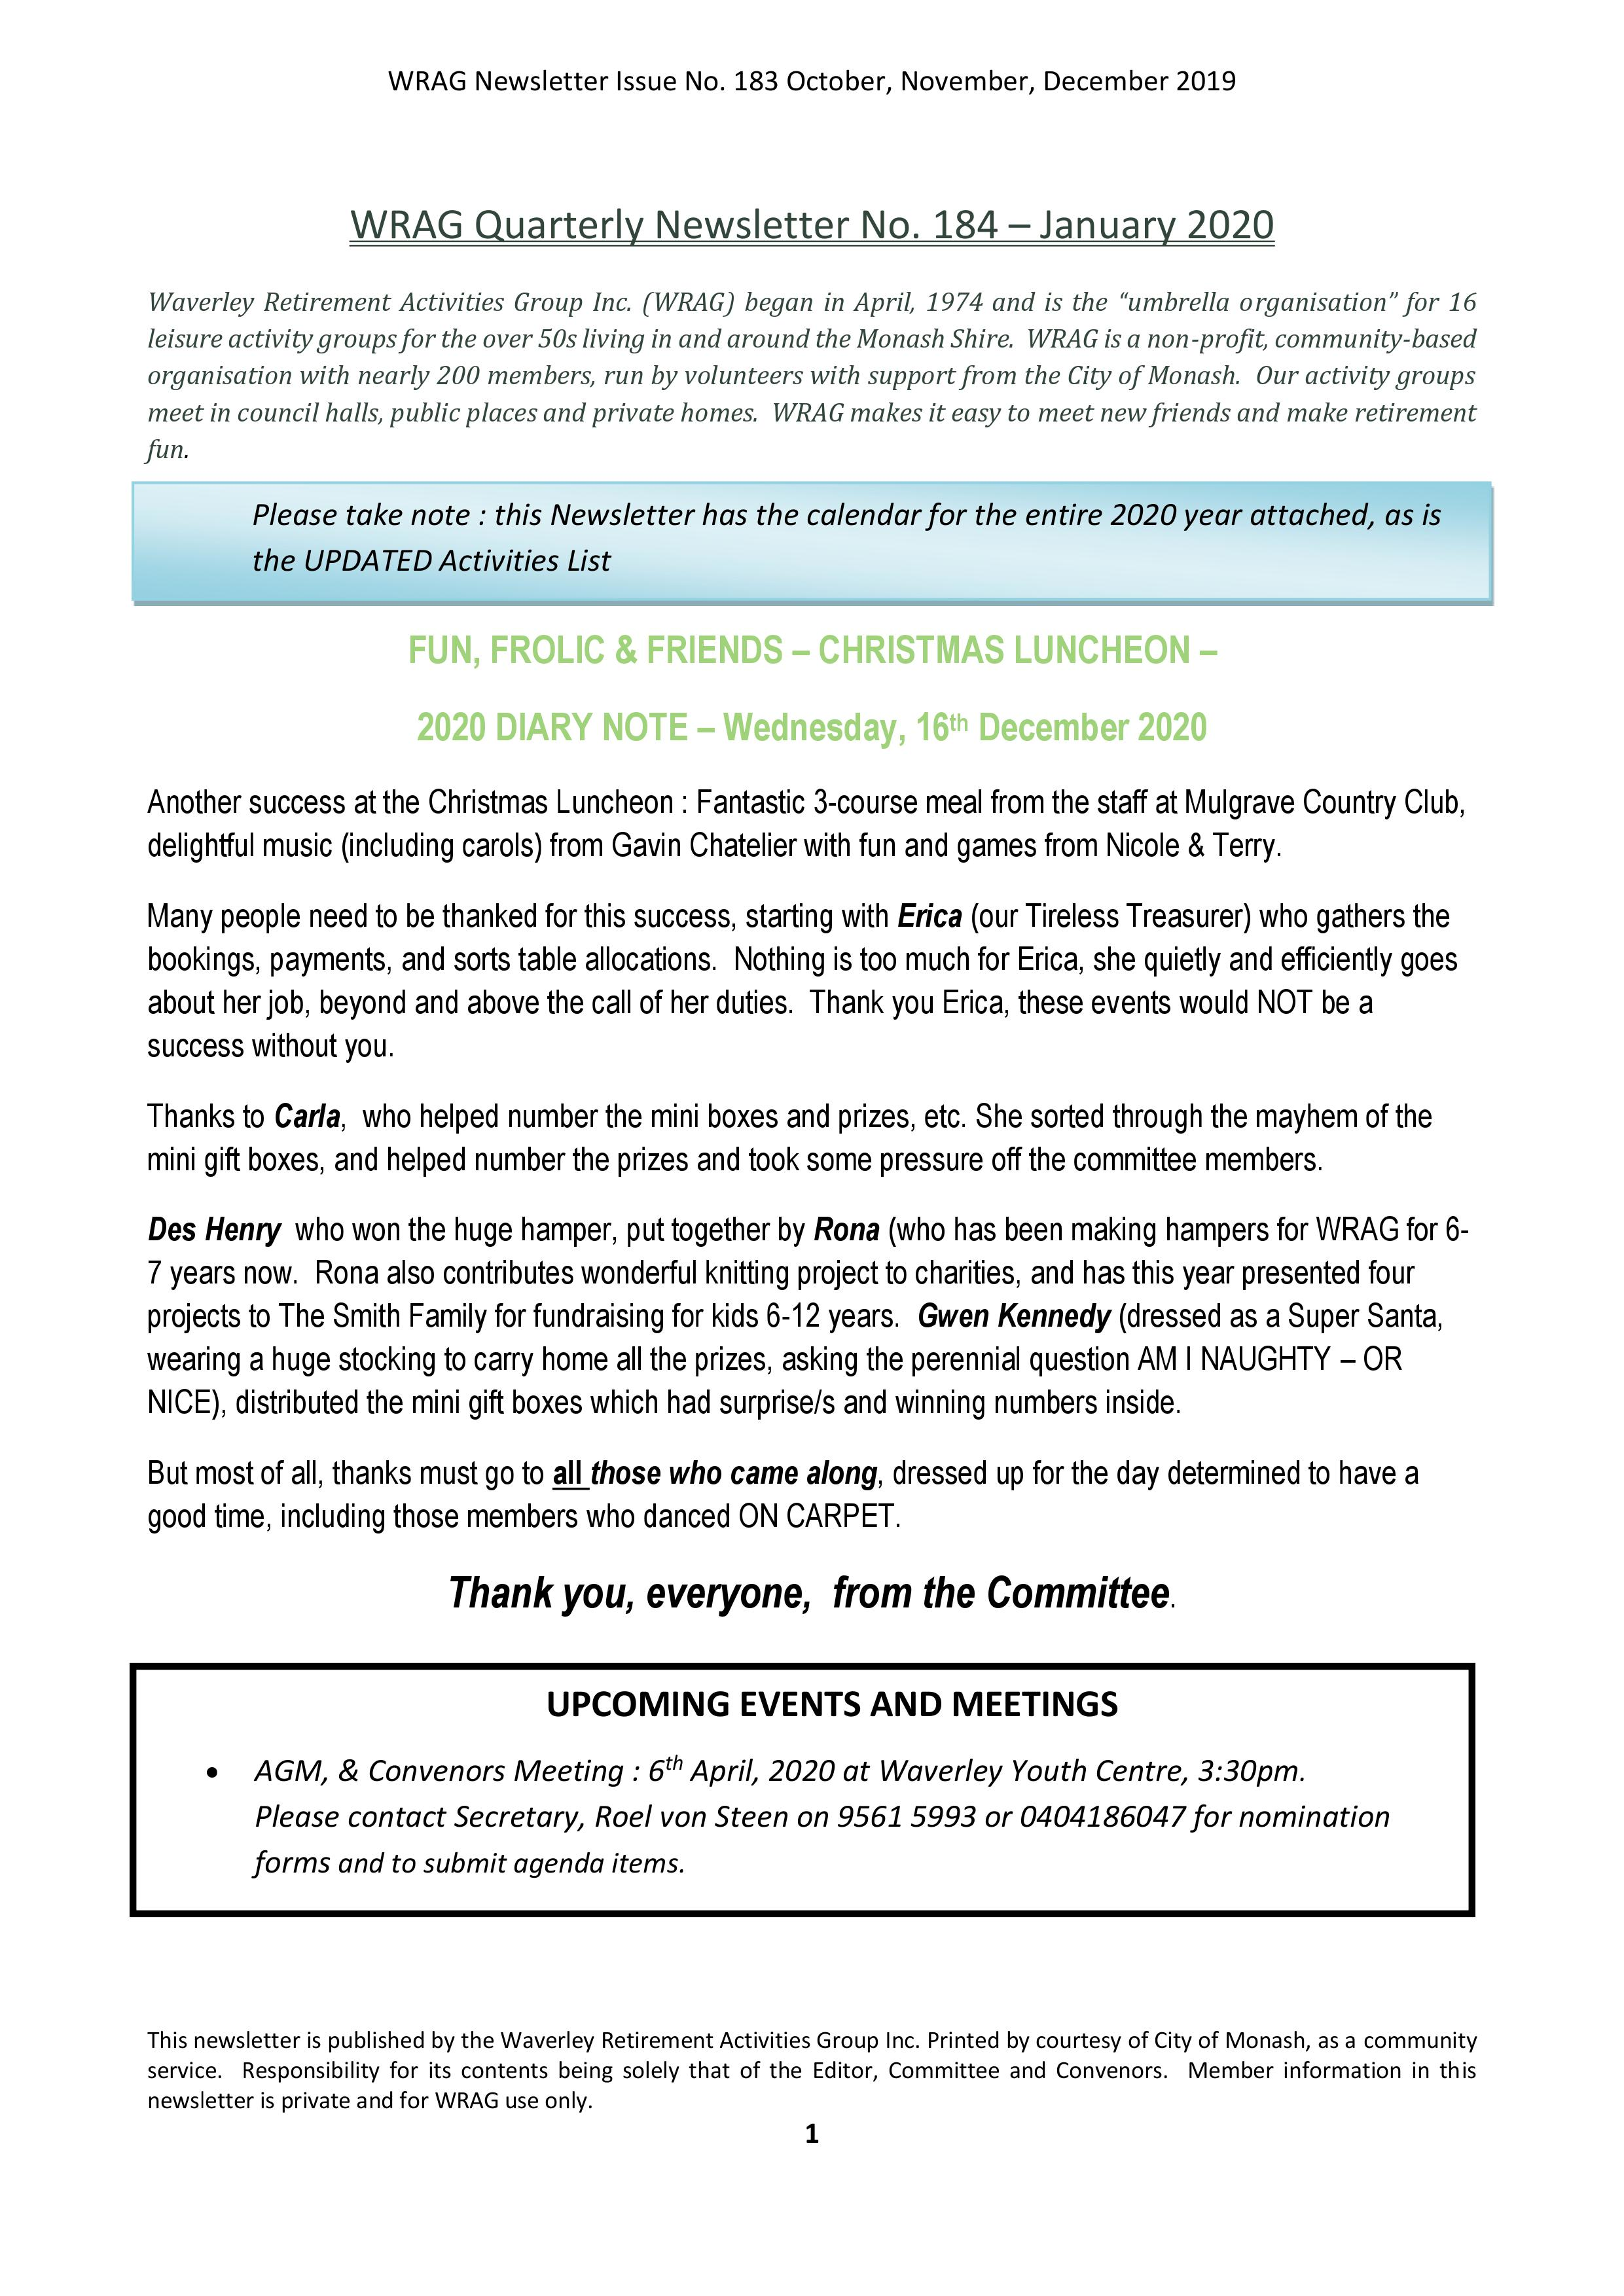 WRAG Newsletter 184 Front Page Jan 2020